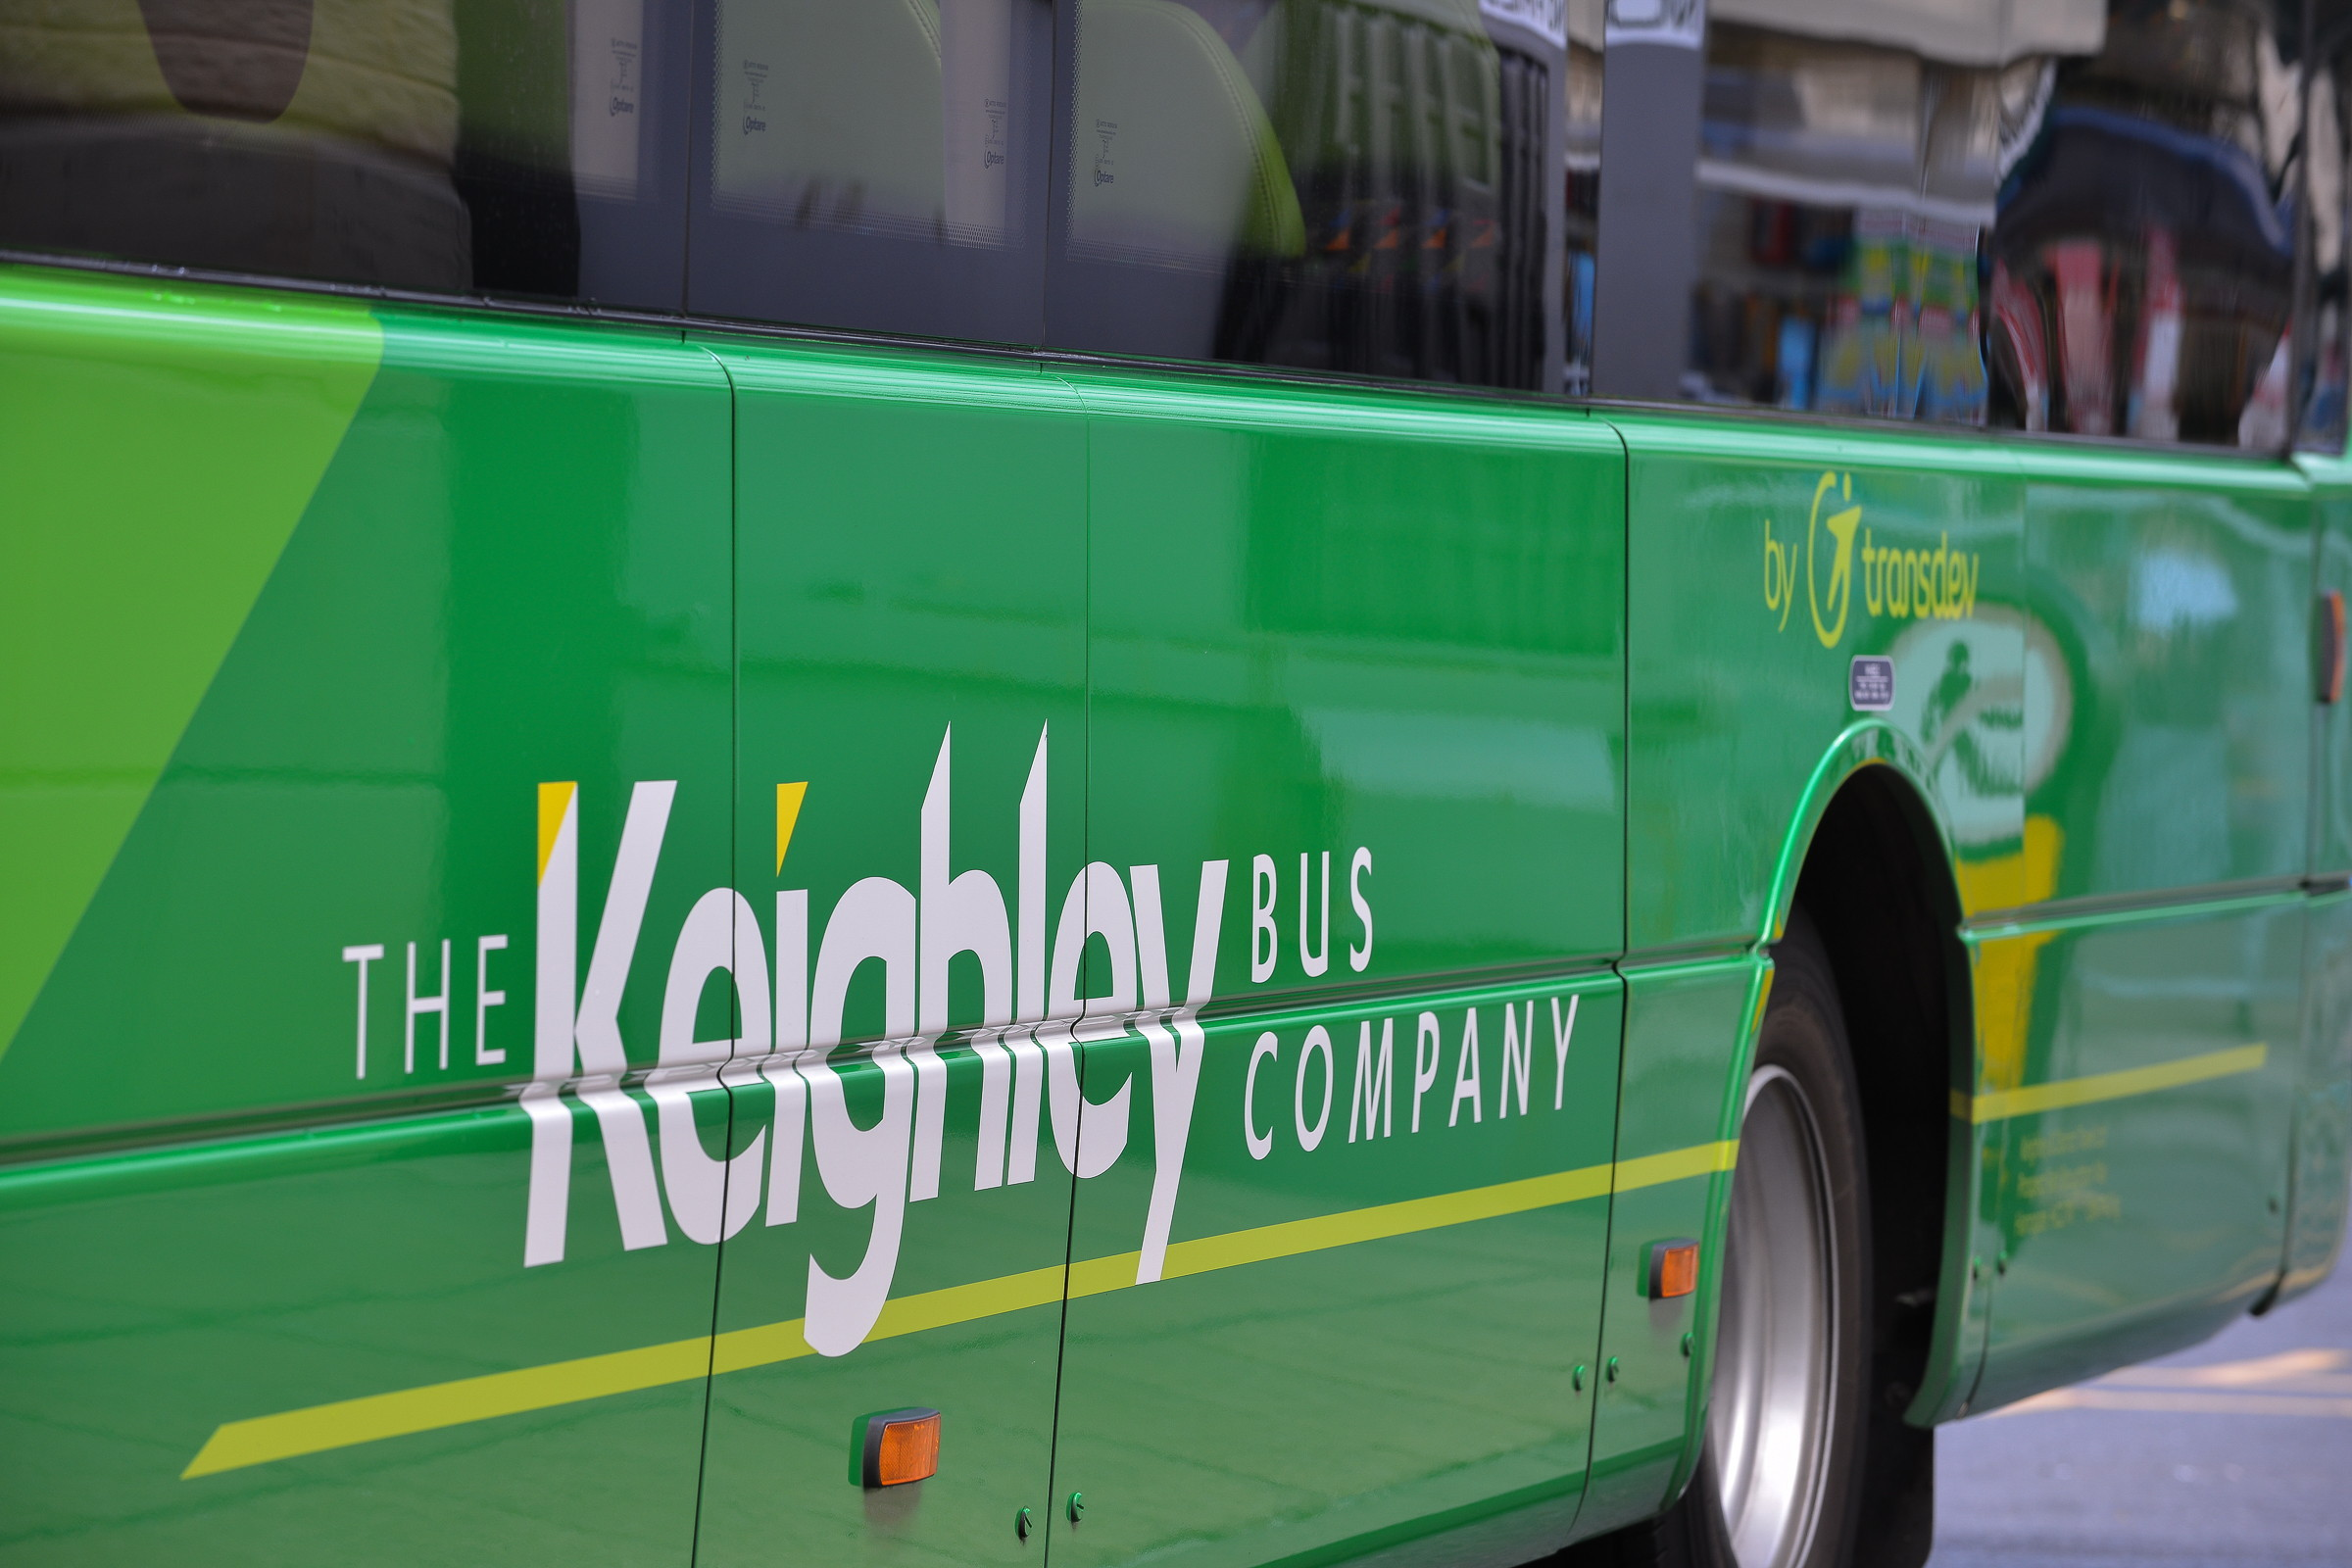 Keighley buses to receive new ticket machines